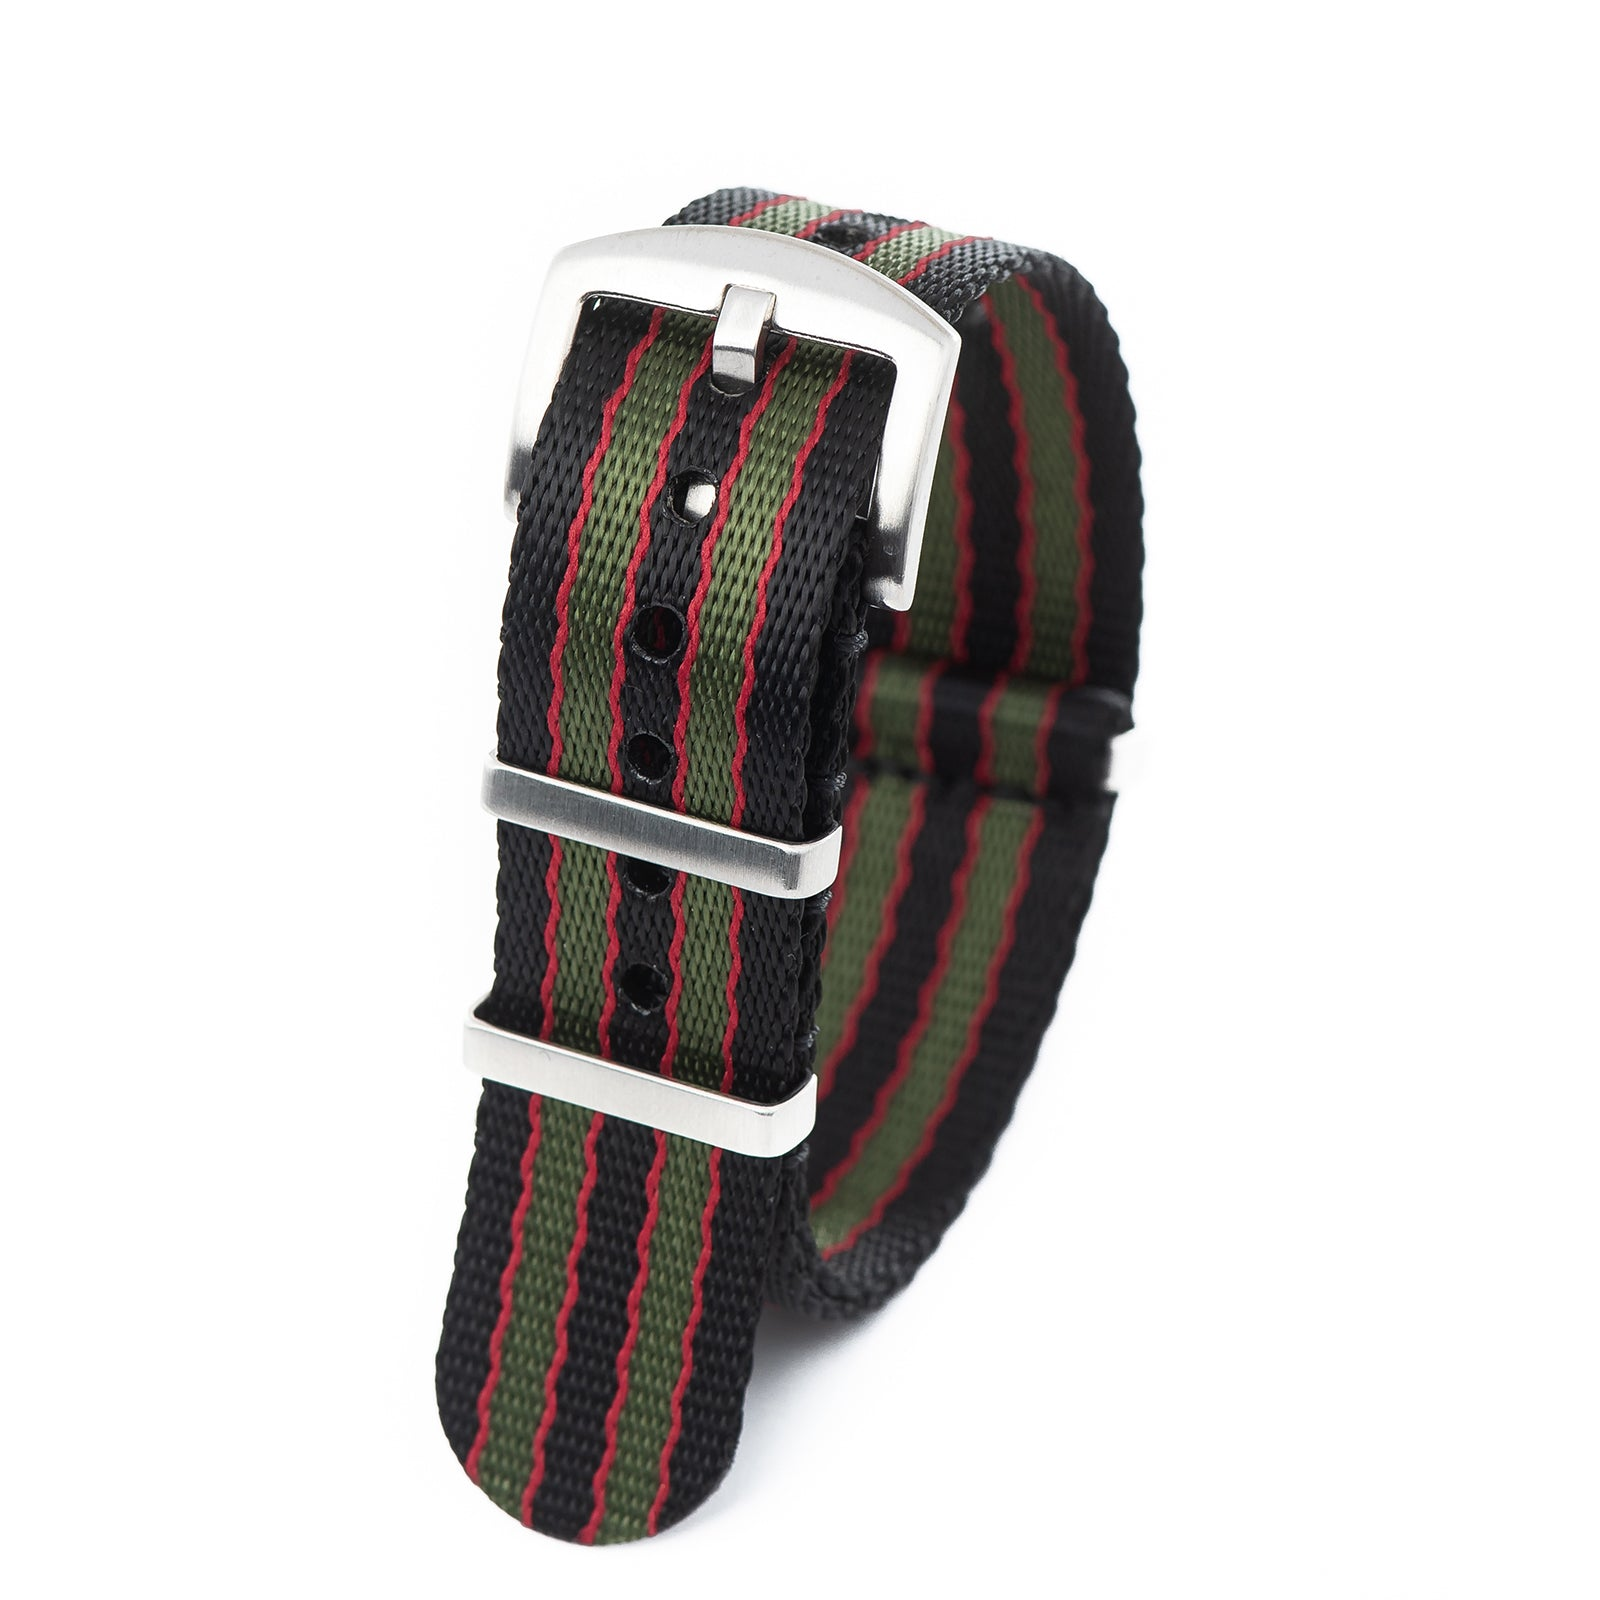 20mm 22mm Premium Seat Belt Nylon NATO Watch Strap - Black Red Green [ James Bond ]